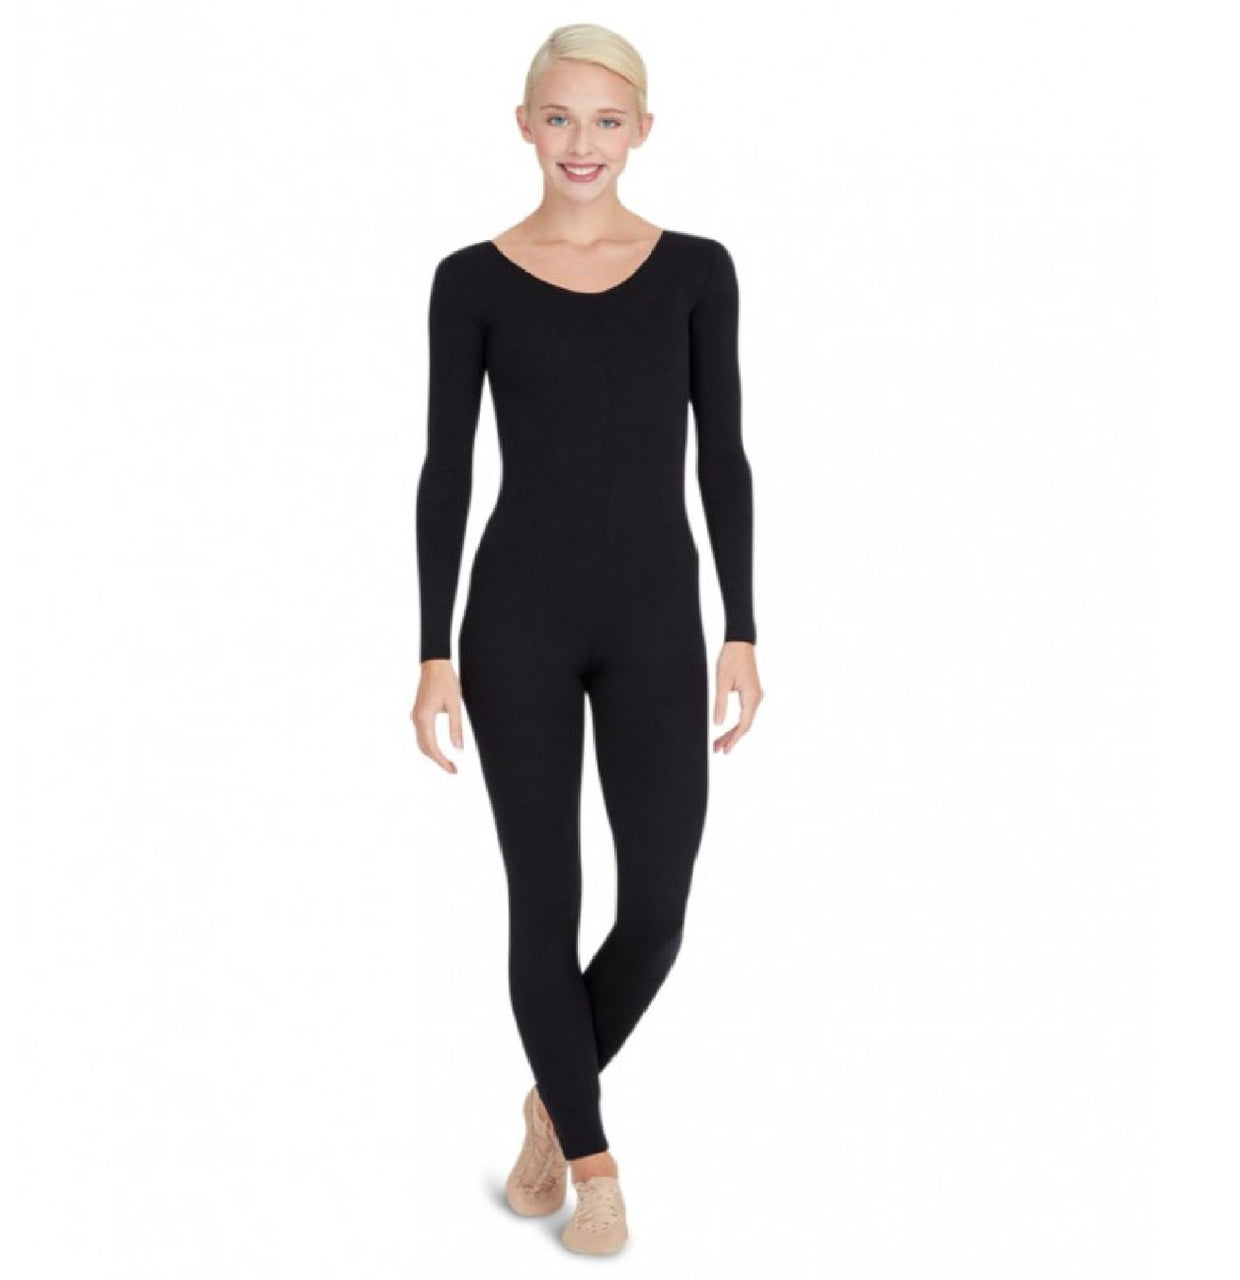 Capezio TB114 - Long Sleeve Unitard Adult